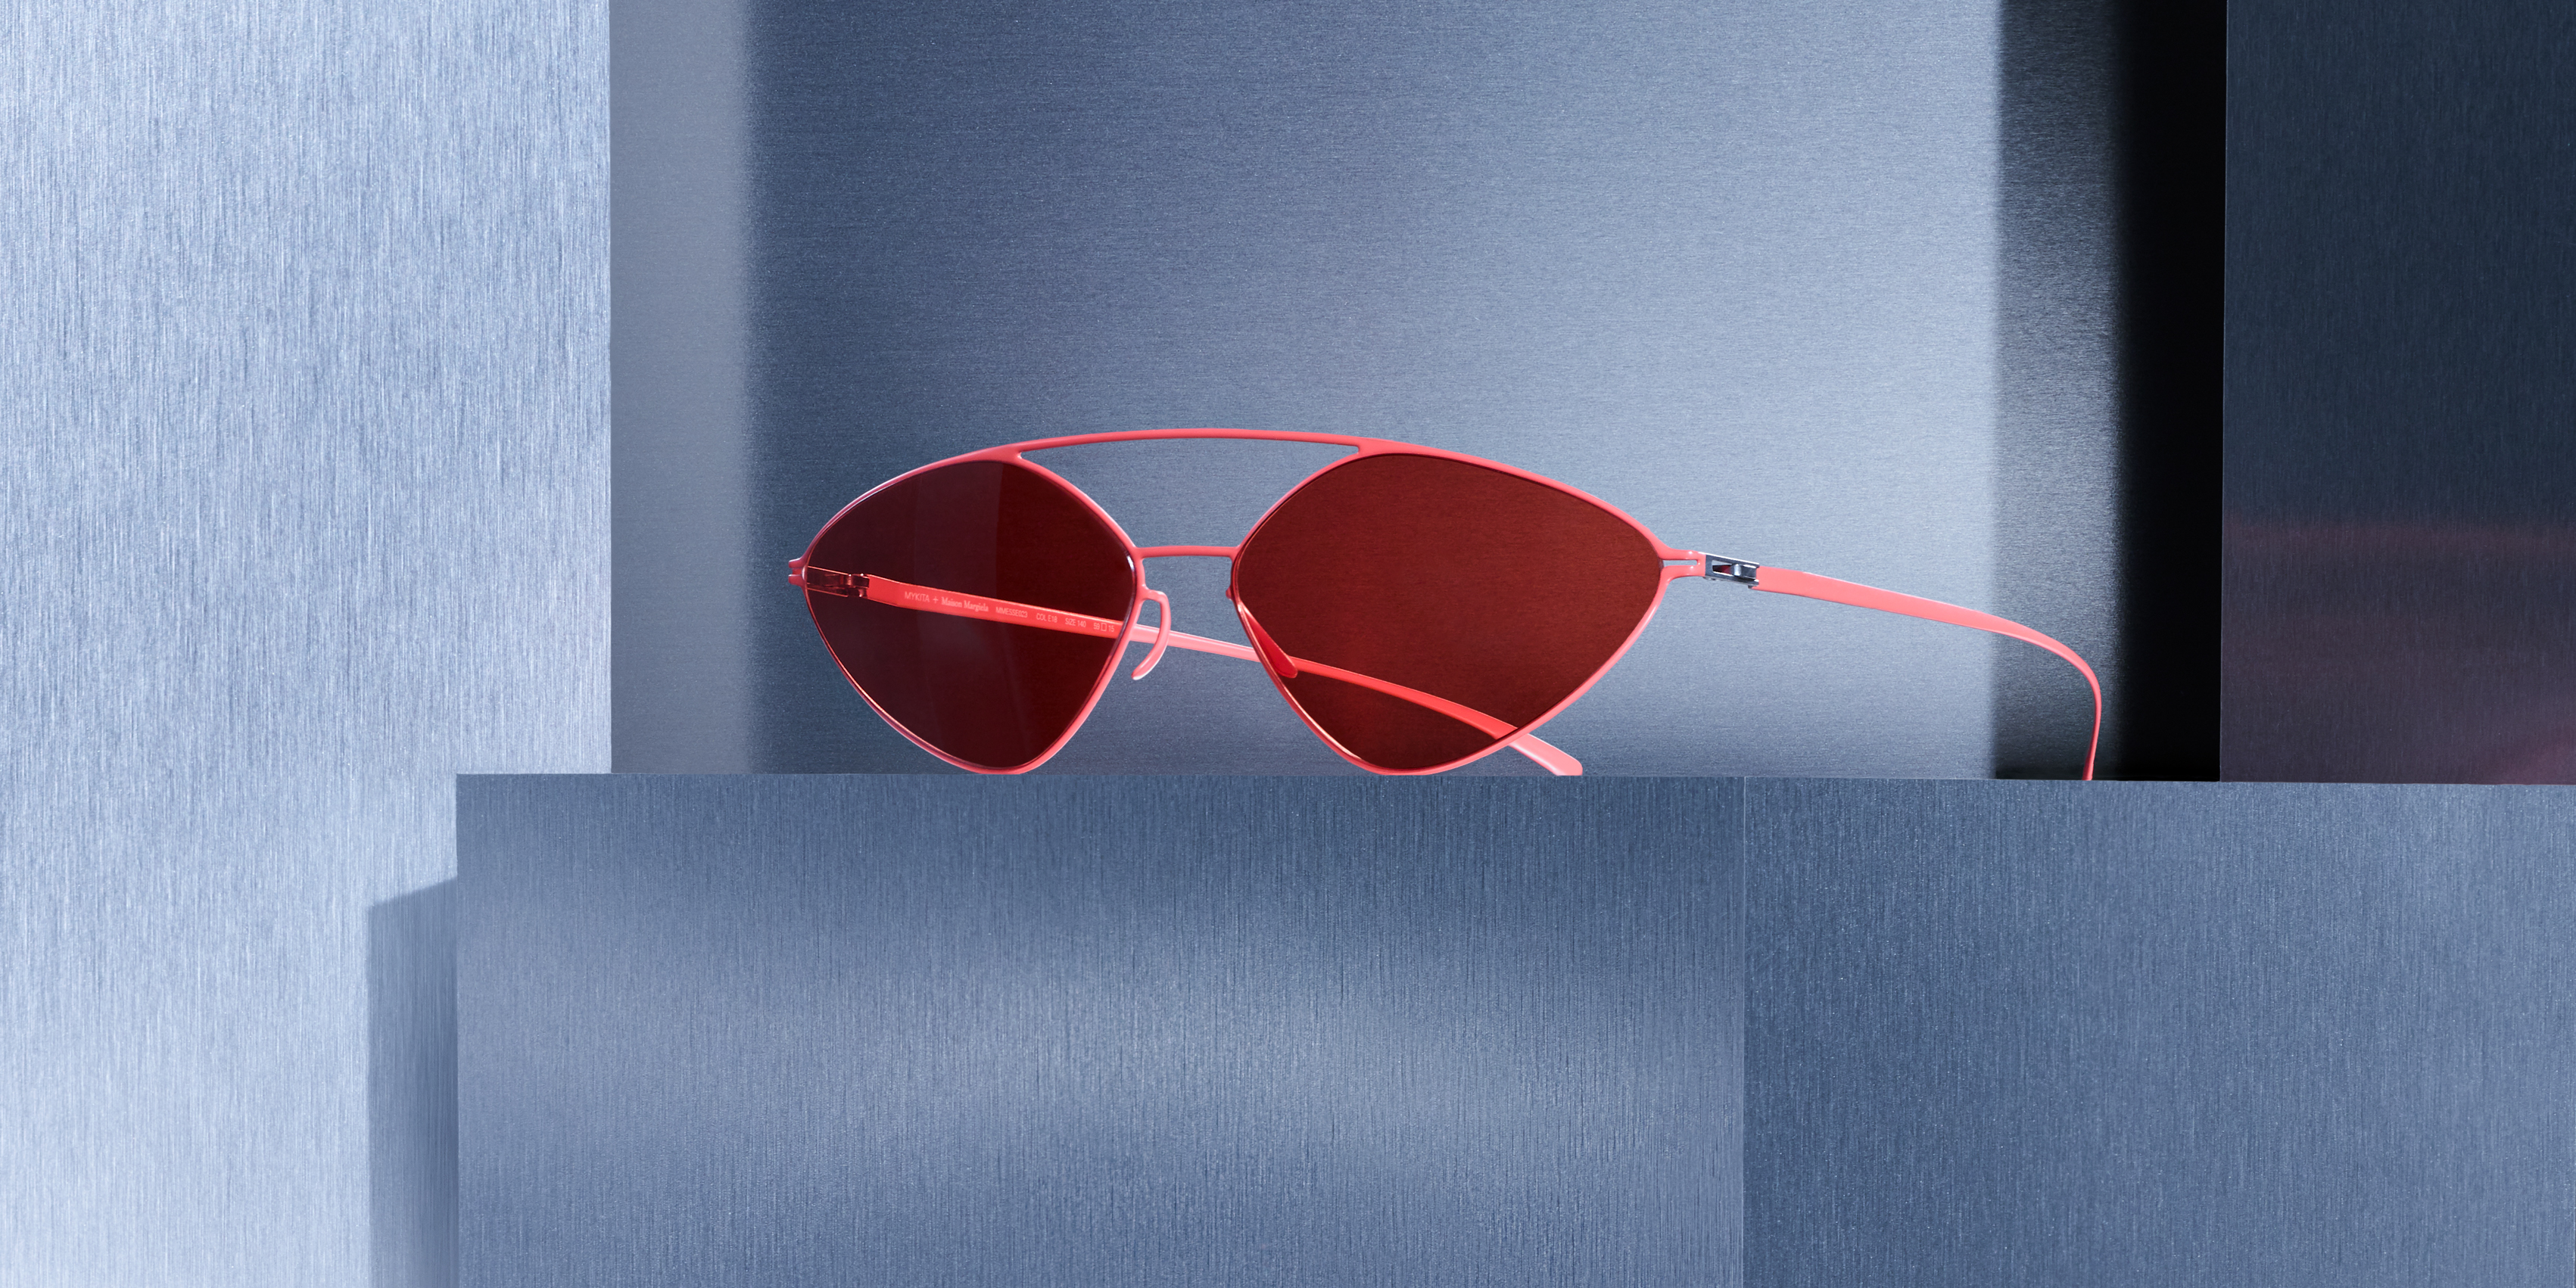 MYKITA Maison Margiela Campaign Mmesse23 Baywatch Red Ultra Red Solid Srgb Desktop